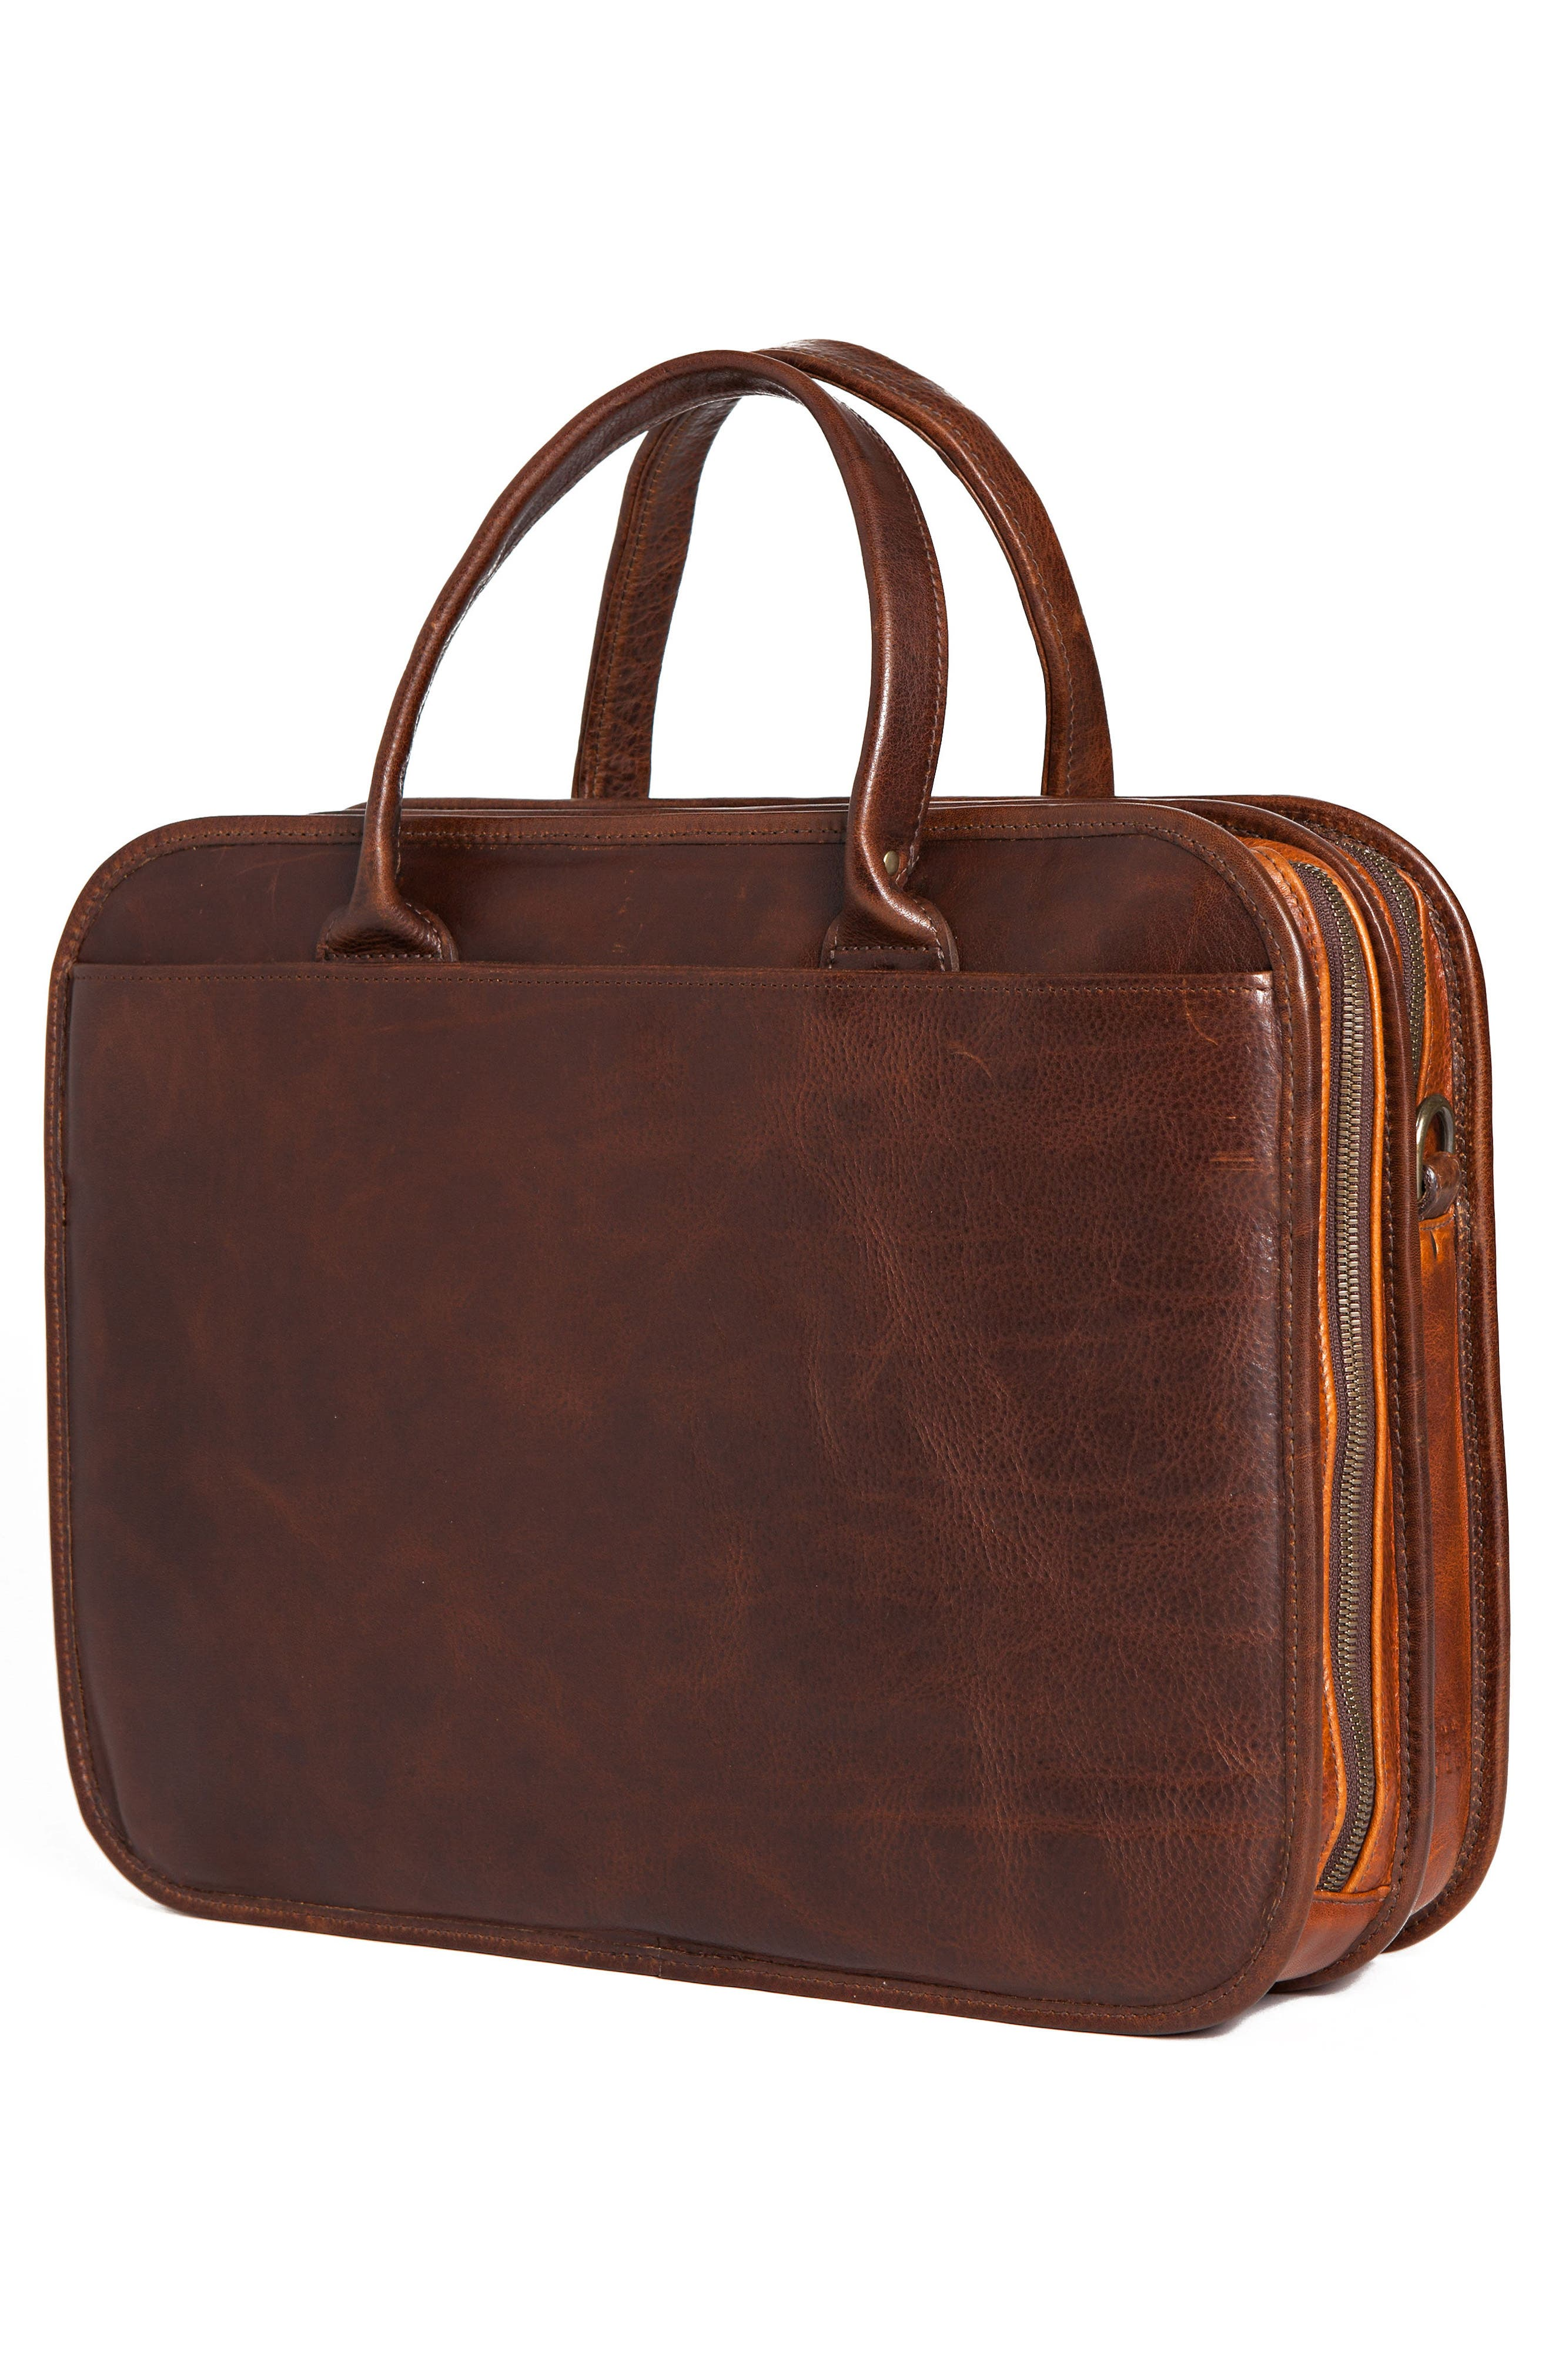 Miller Leather Briefcase,                             Alternate thumbnail 5, color,                             TITAN MILLED BROWN